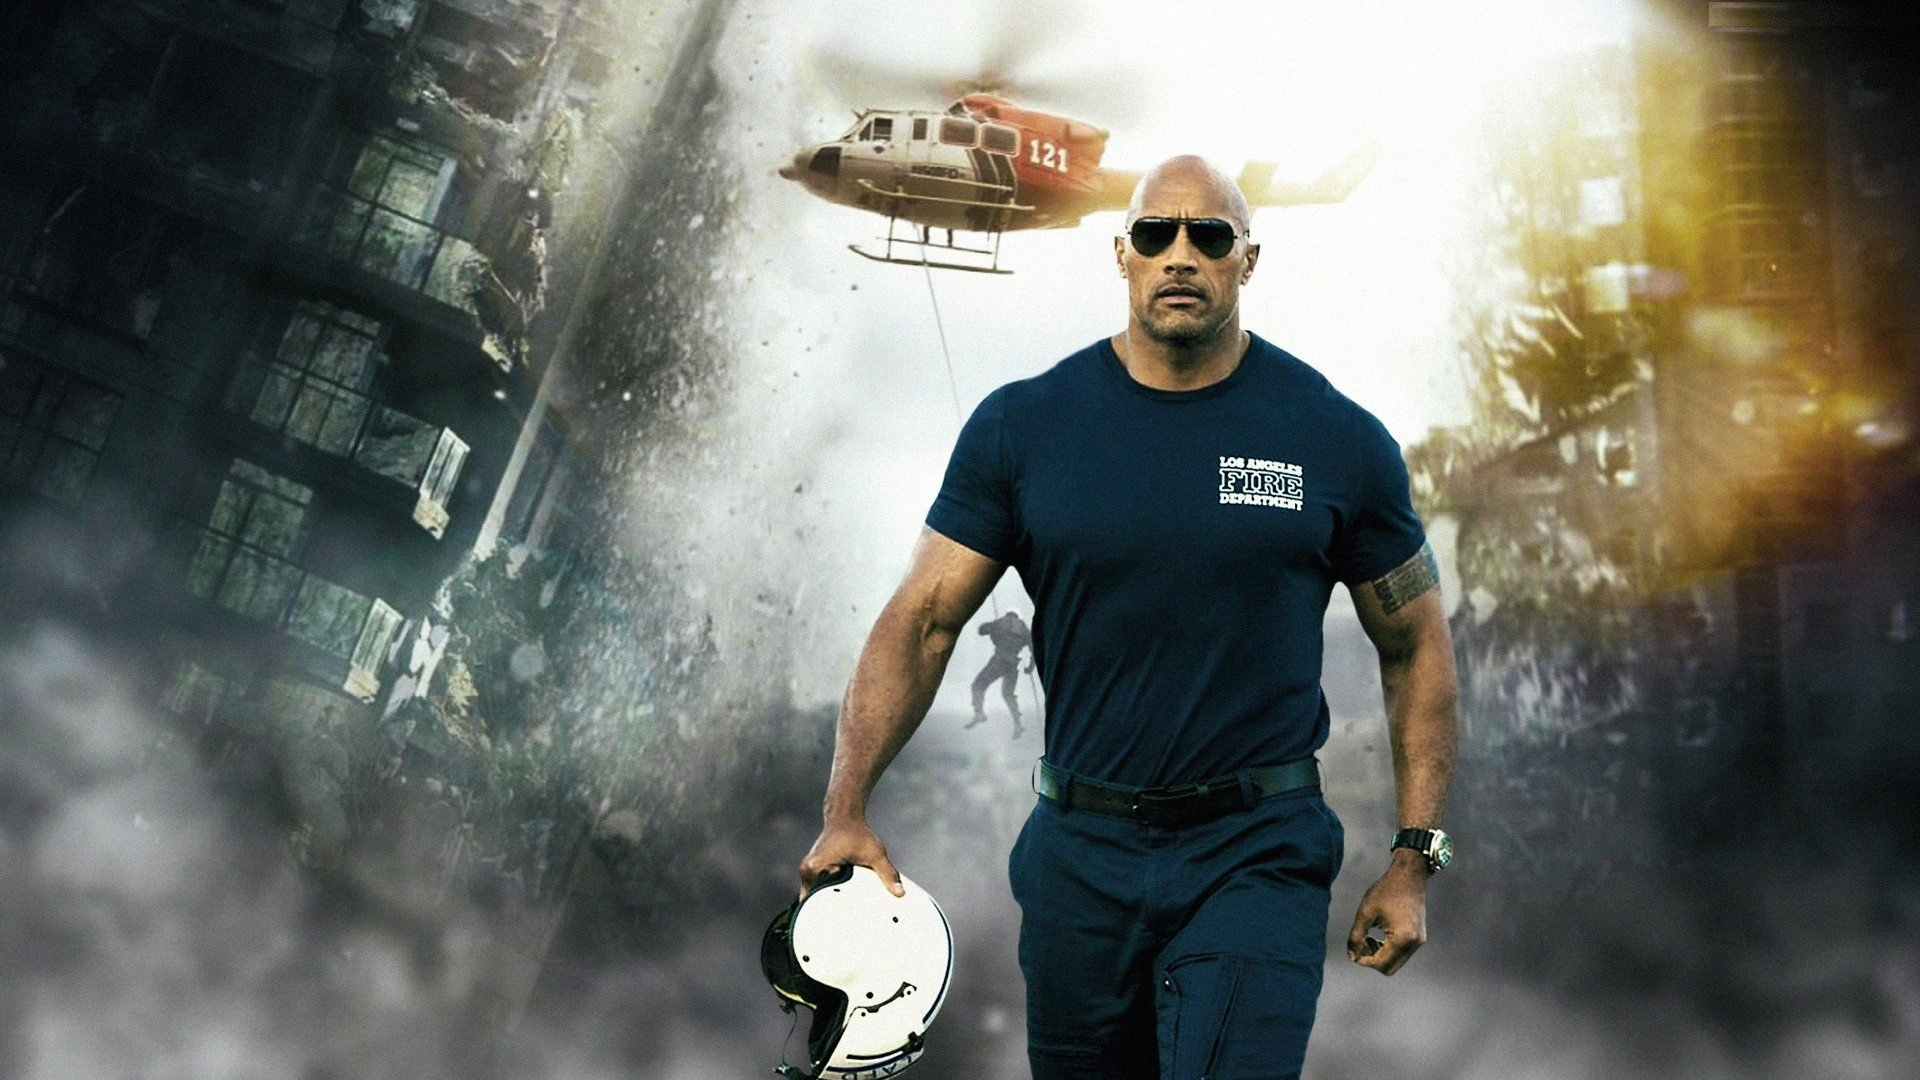 San-Andreas-Pictures